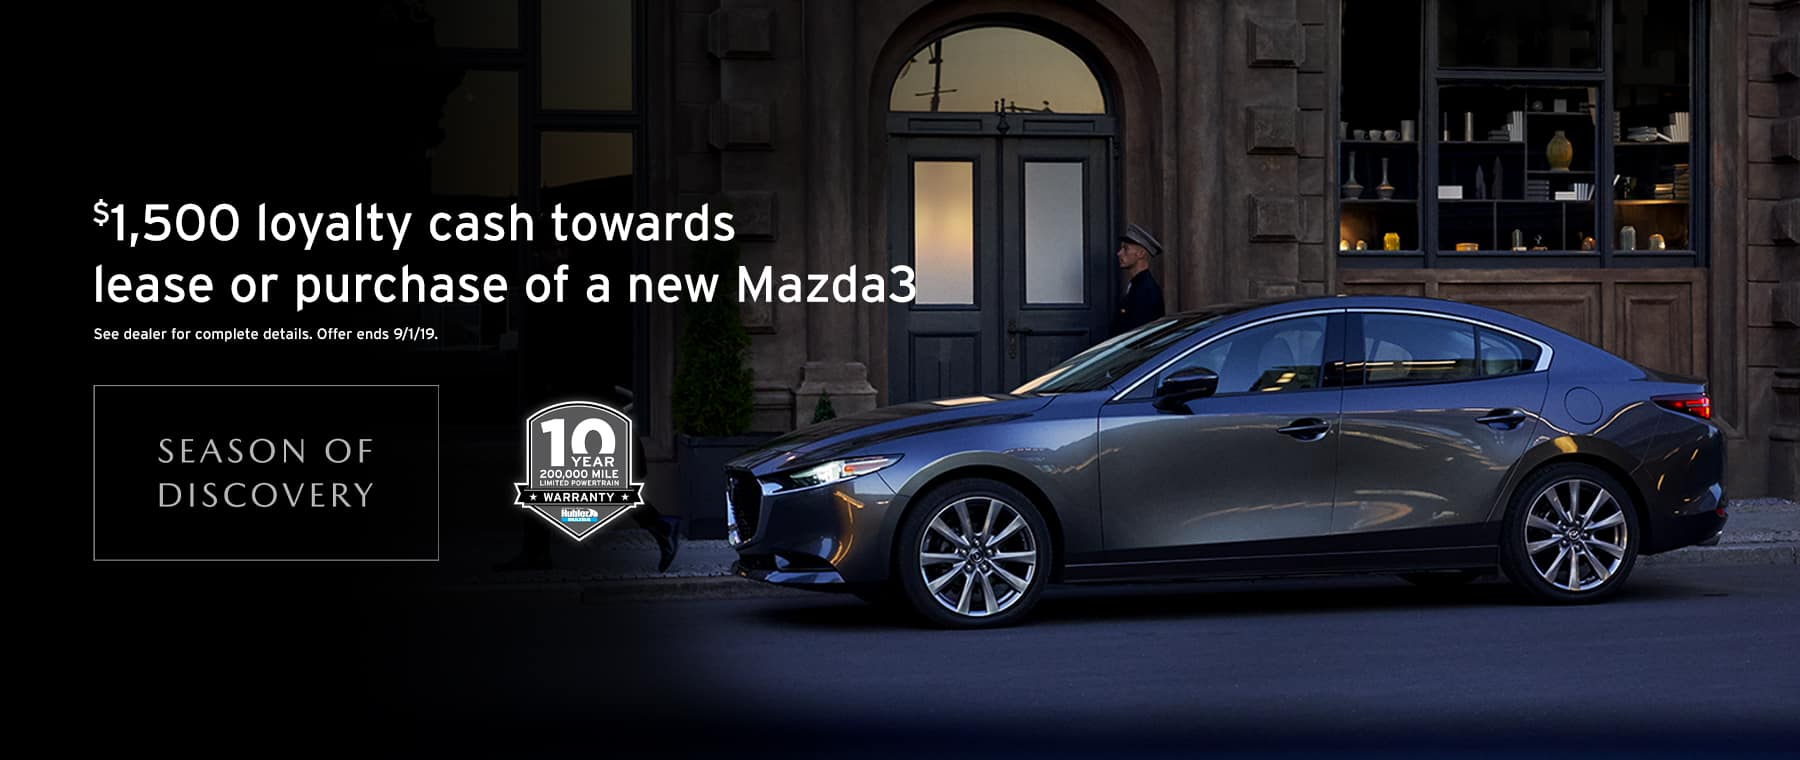 Mazda3 $1500 offer at Hubler Mazda